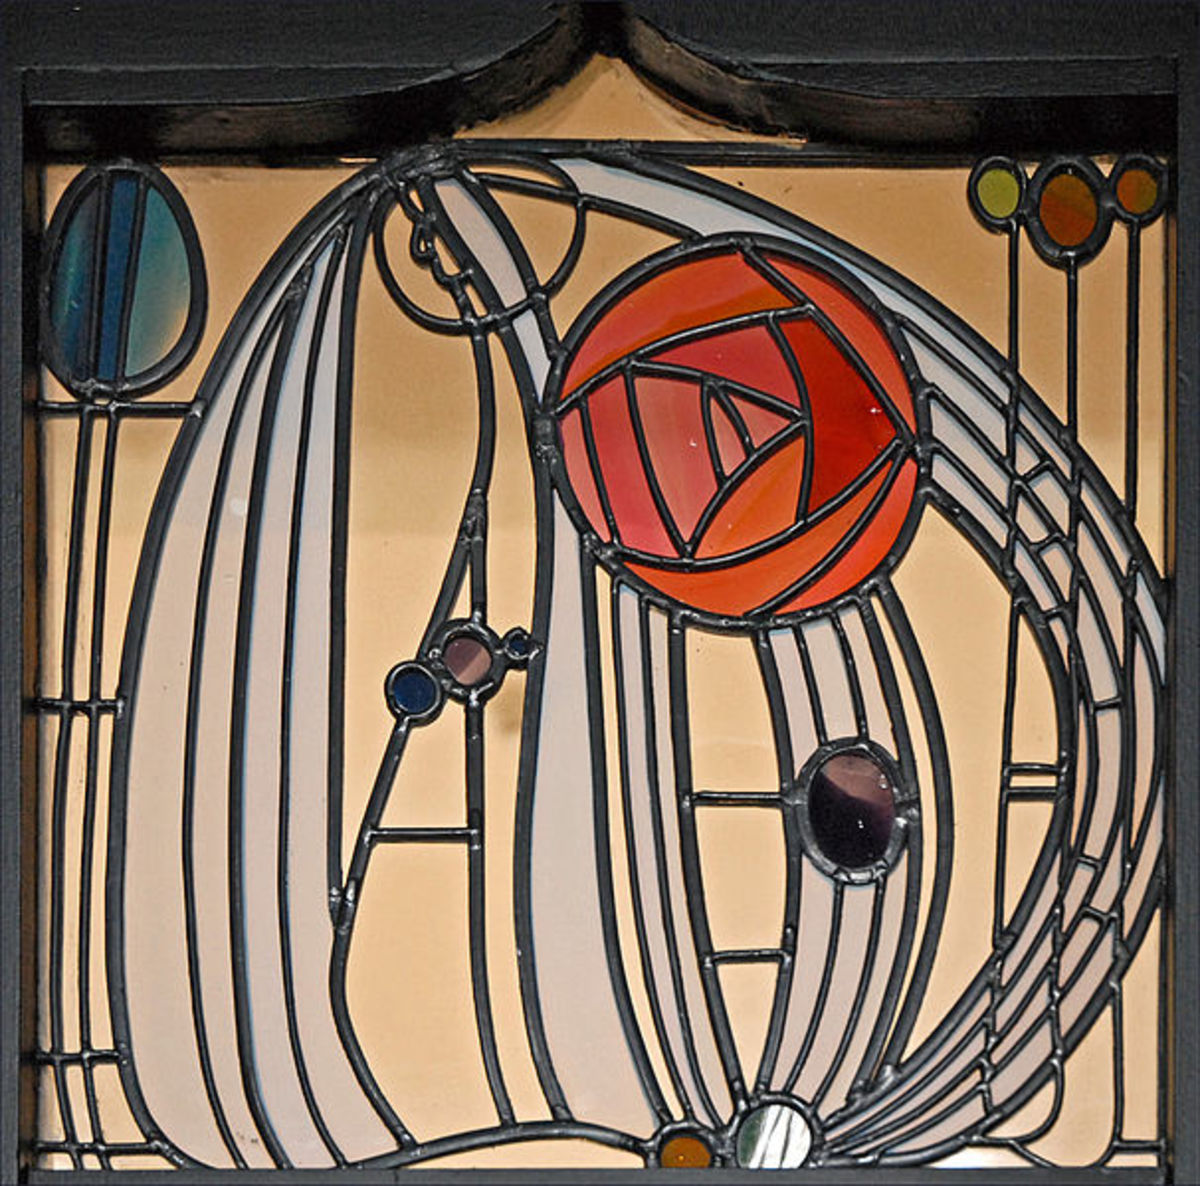 The MacKintosh rose set in stained glass, within a window panel designed for the House for an Art Lover in Glasgow, designed in 1901 and posthumously built in the late 1980s